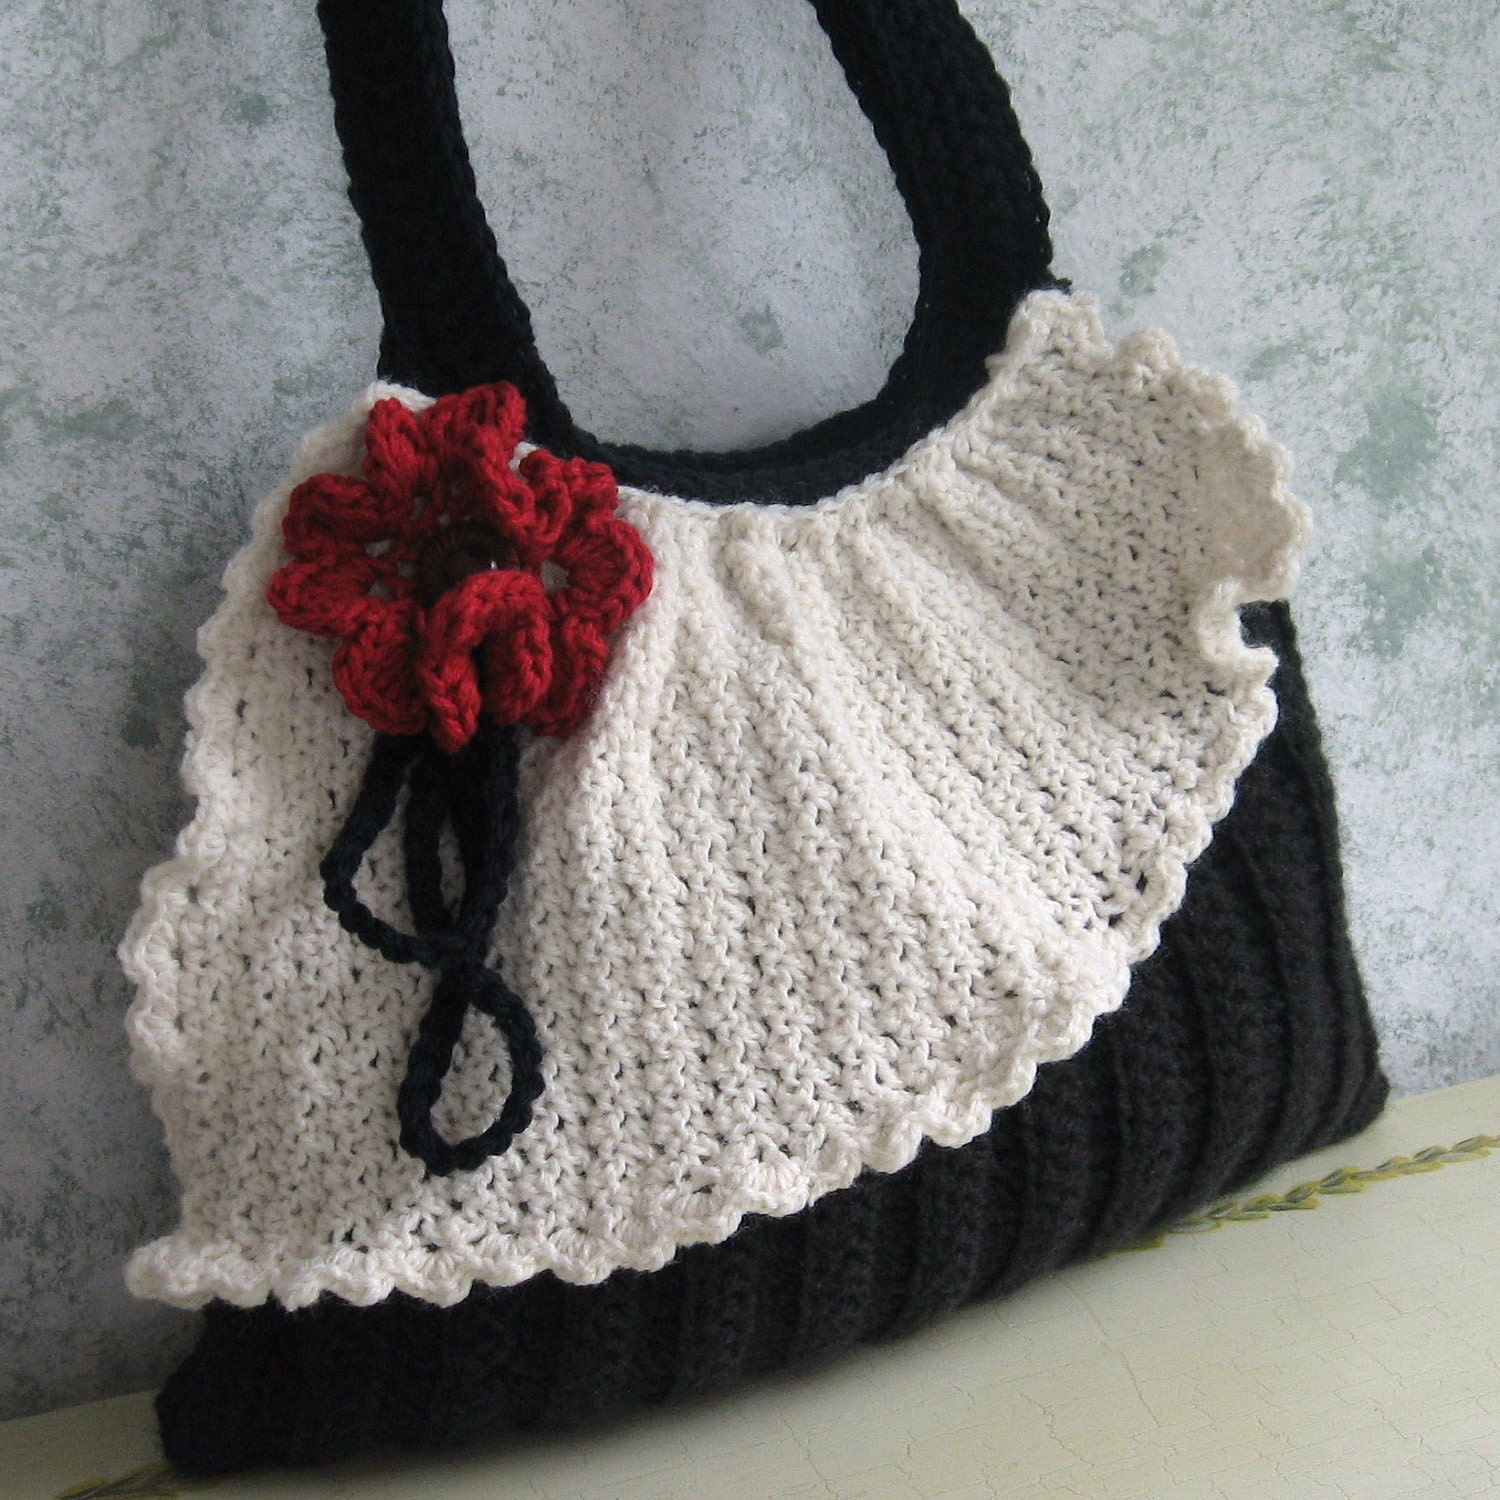 Crochet Handbag Pattern : Crochet Purse Pattern Pleated Bag With Drape And by kalliedesigns